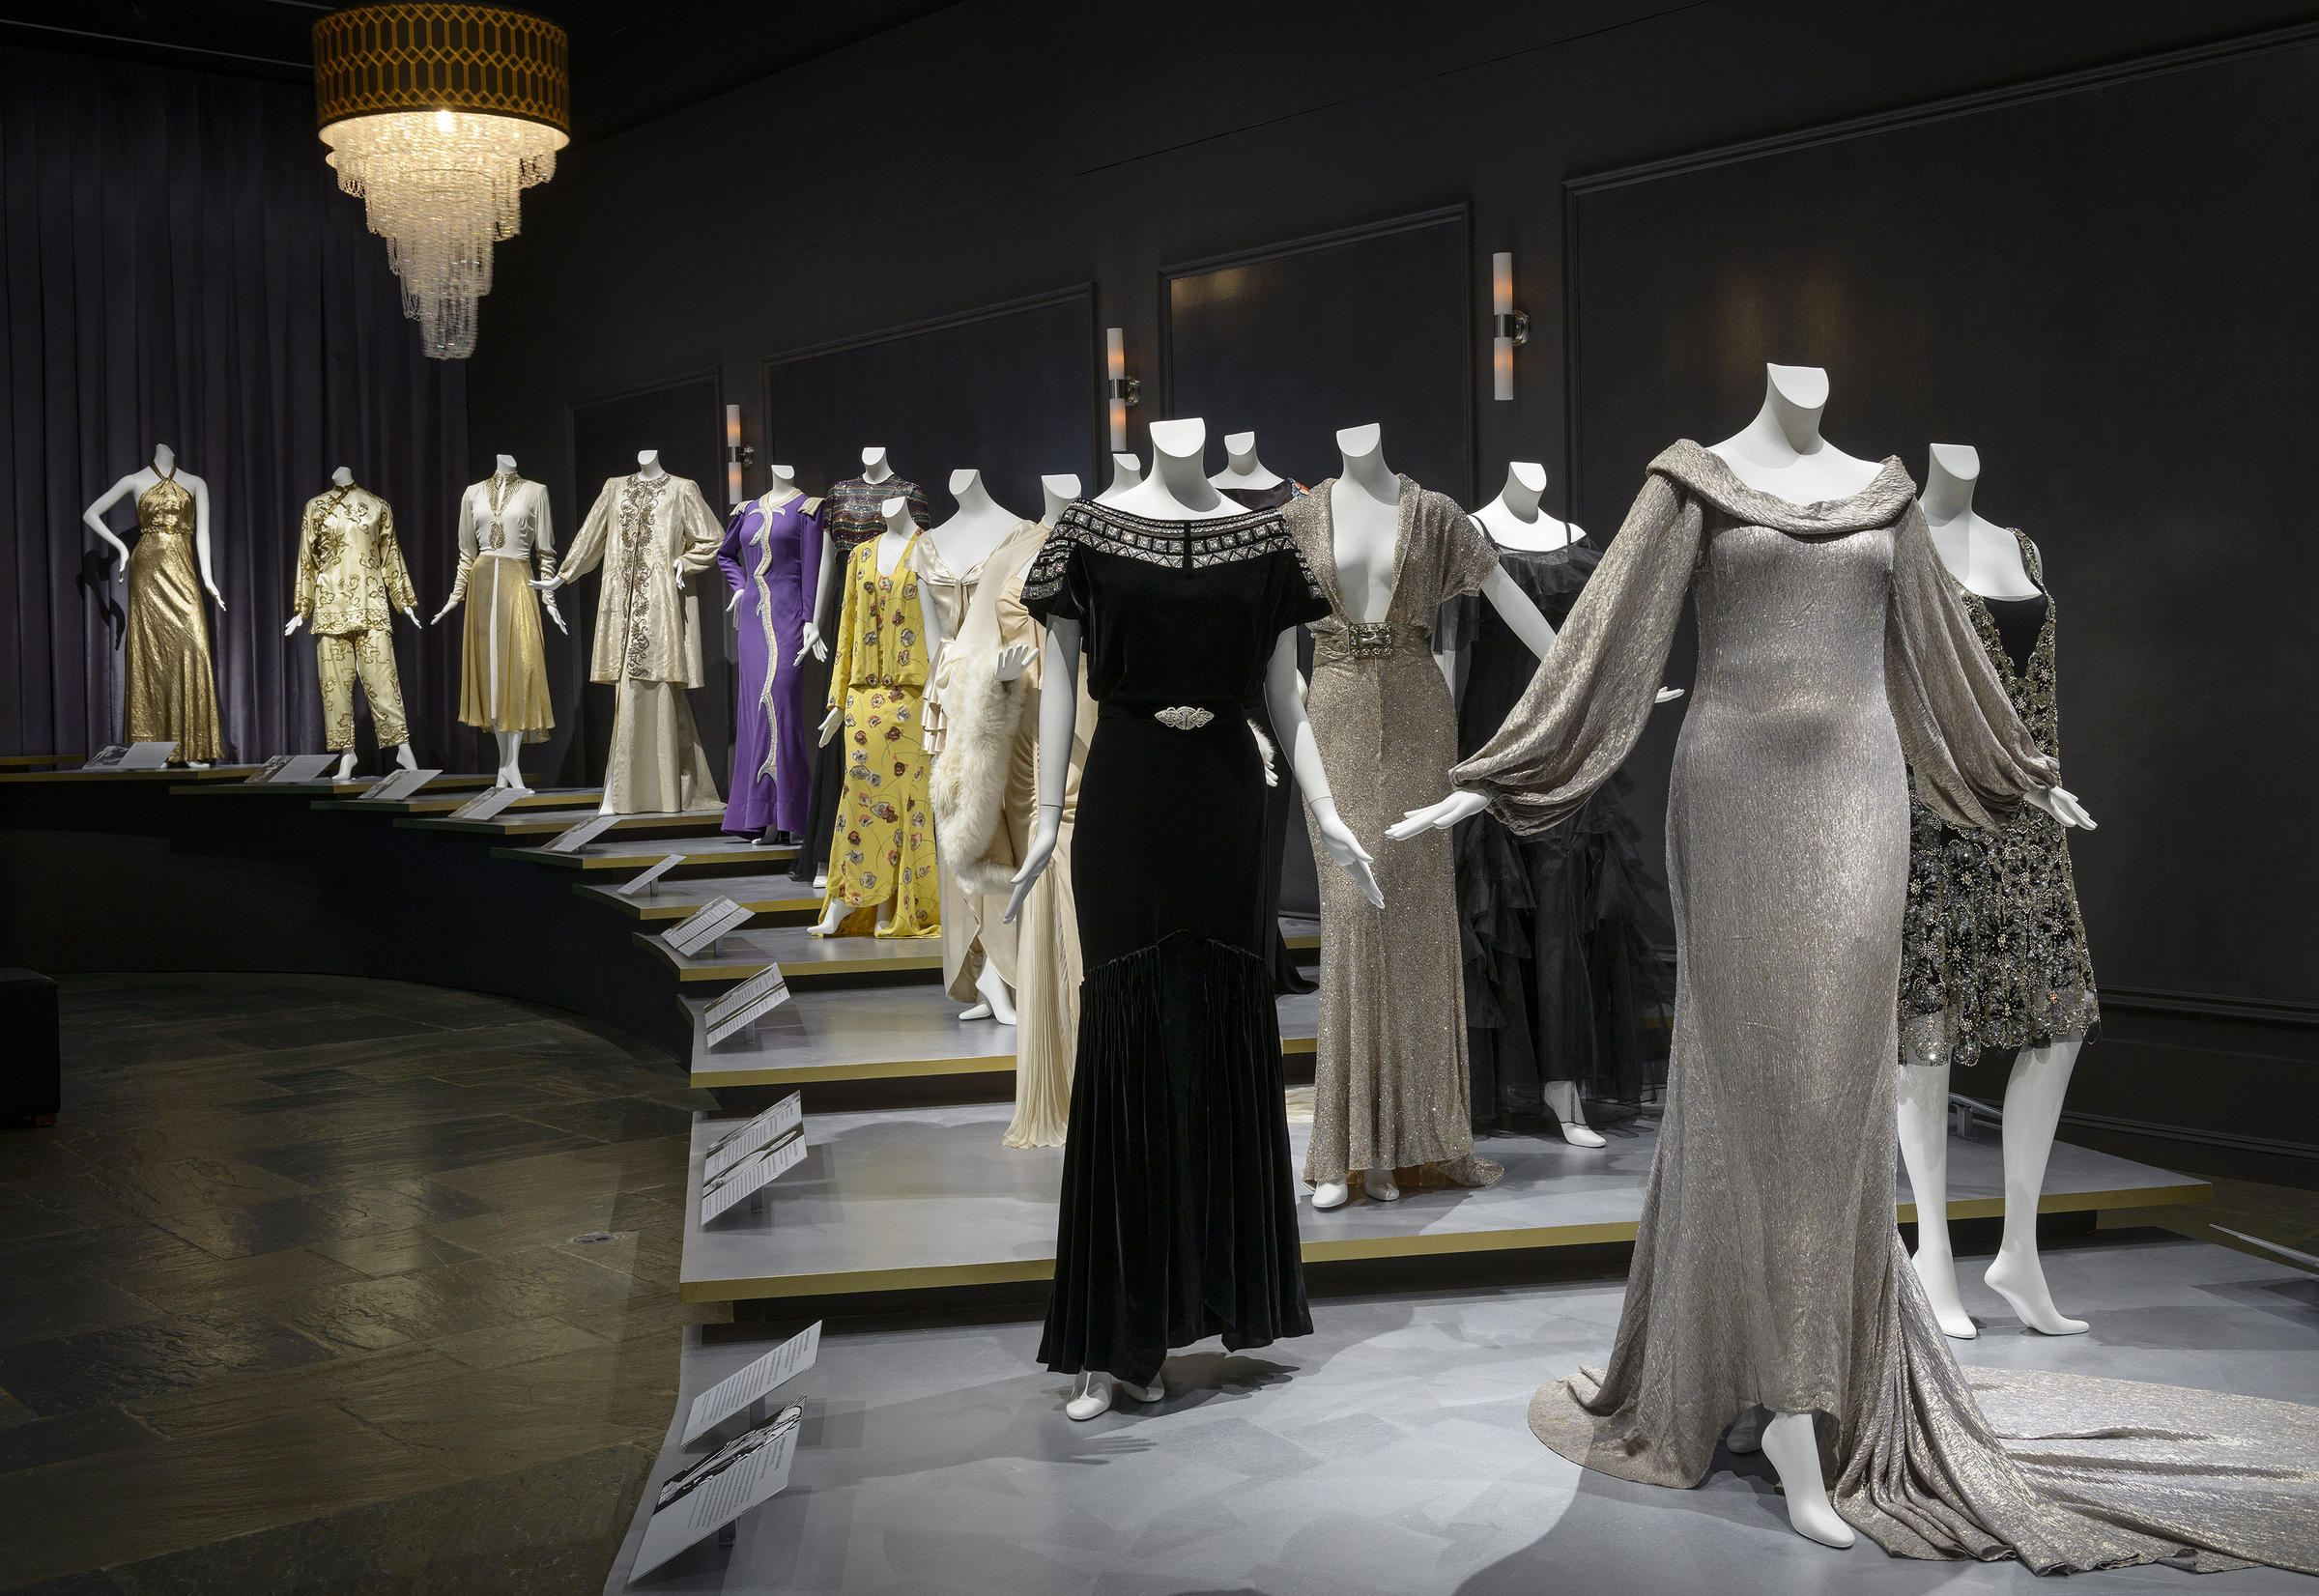 Gold Plated Gowns And 8 Inch Pumps The Stuff That Made Starlets Shimmer Kuow News And Information